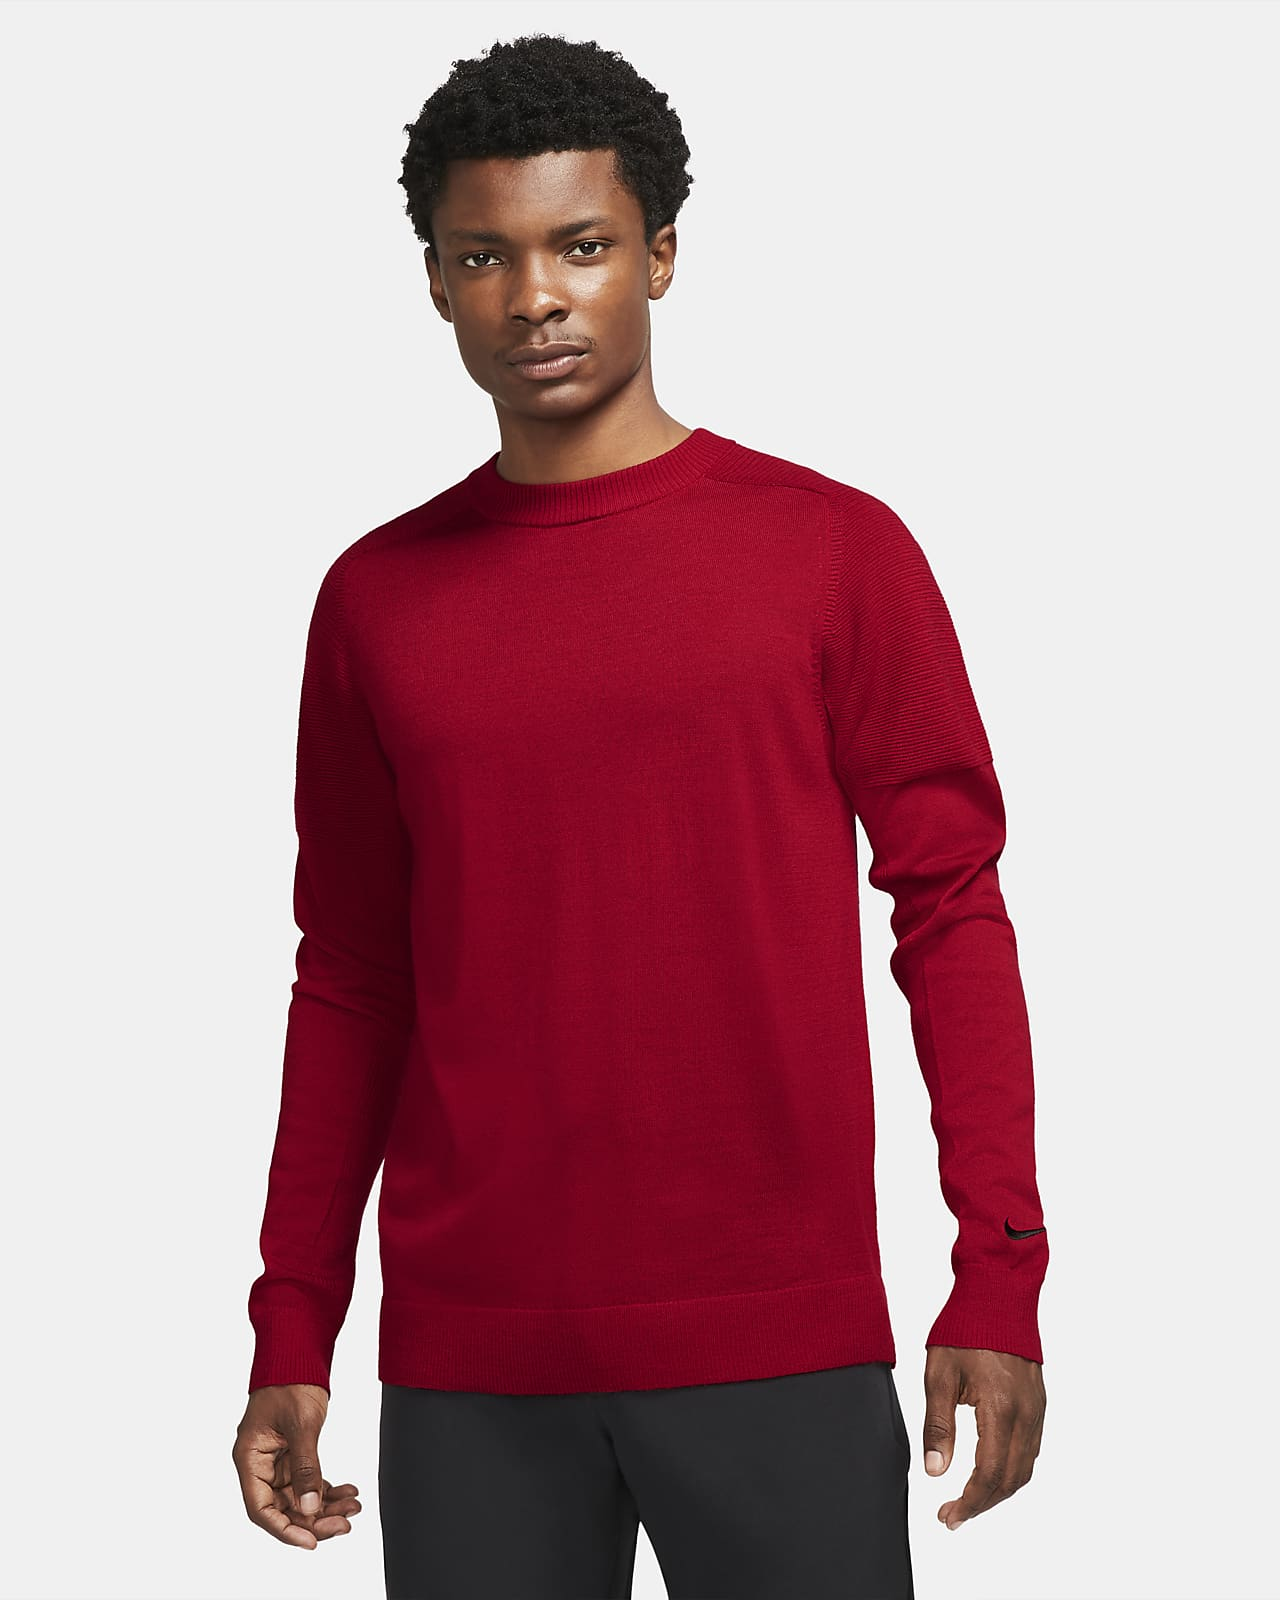 Tiger Woods Men's Knit Golf Sweater